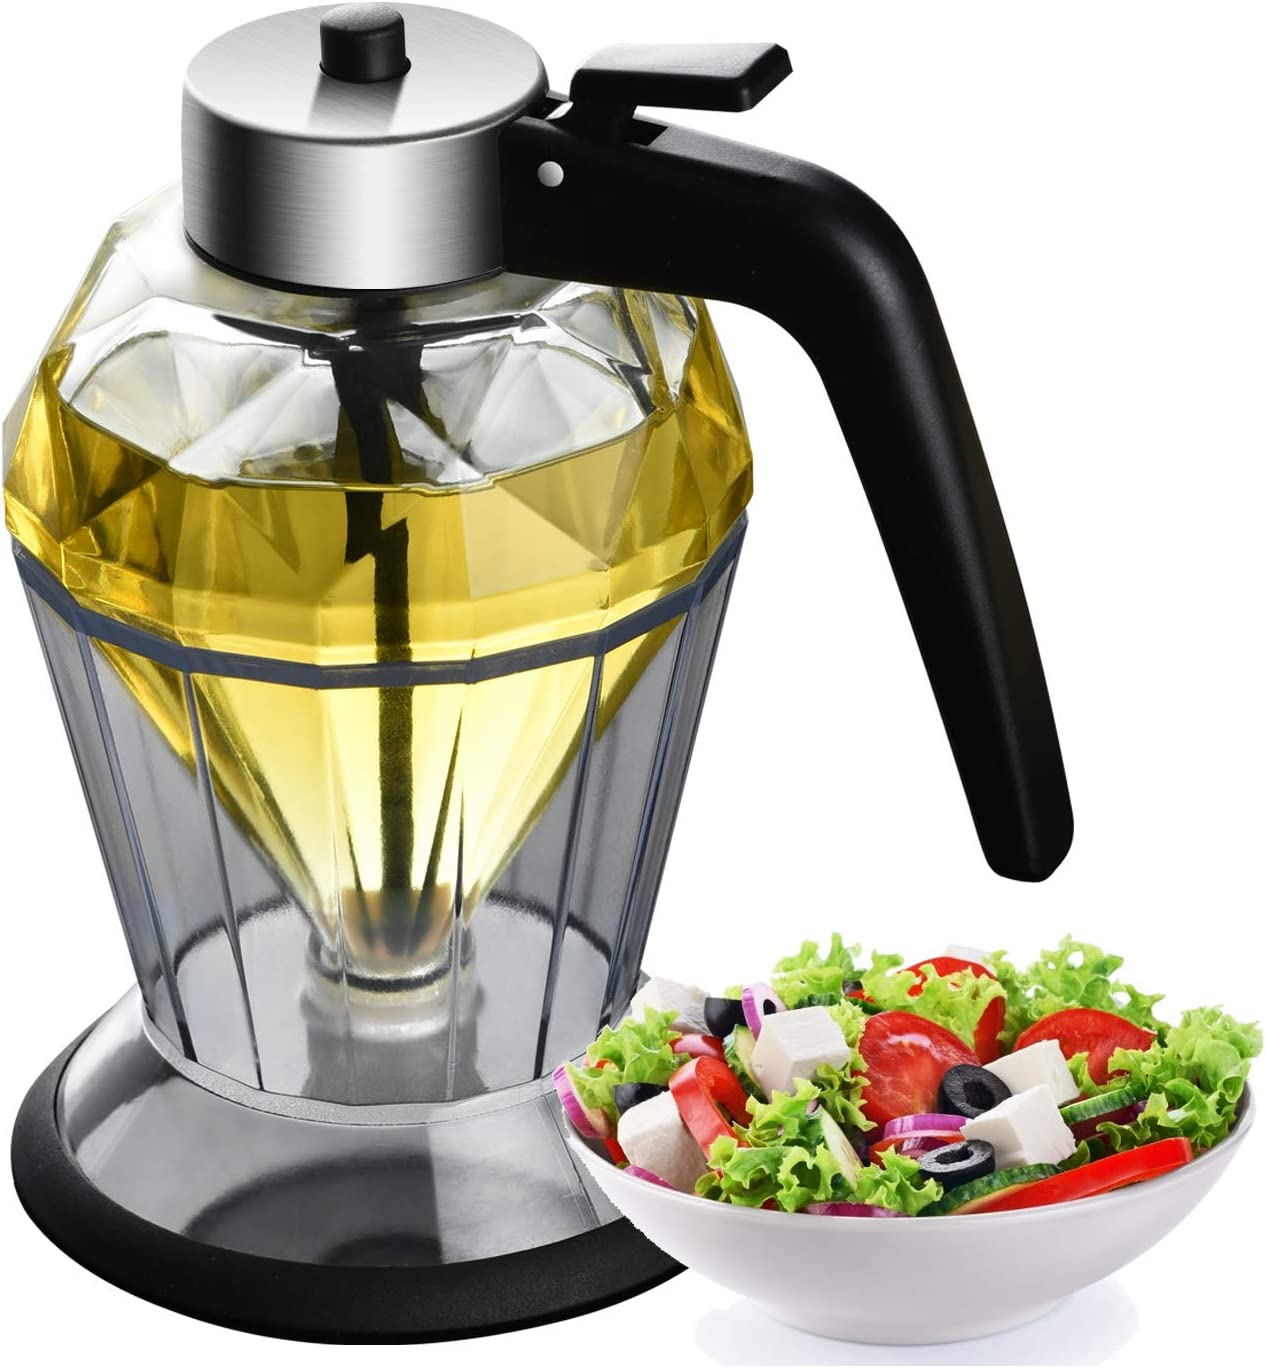 POL PARKMAN Olive Oil Dispenser Glass Lead-Free Max 75% OFF Honey Manufacturer direct delivery Diluted S